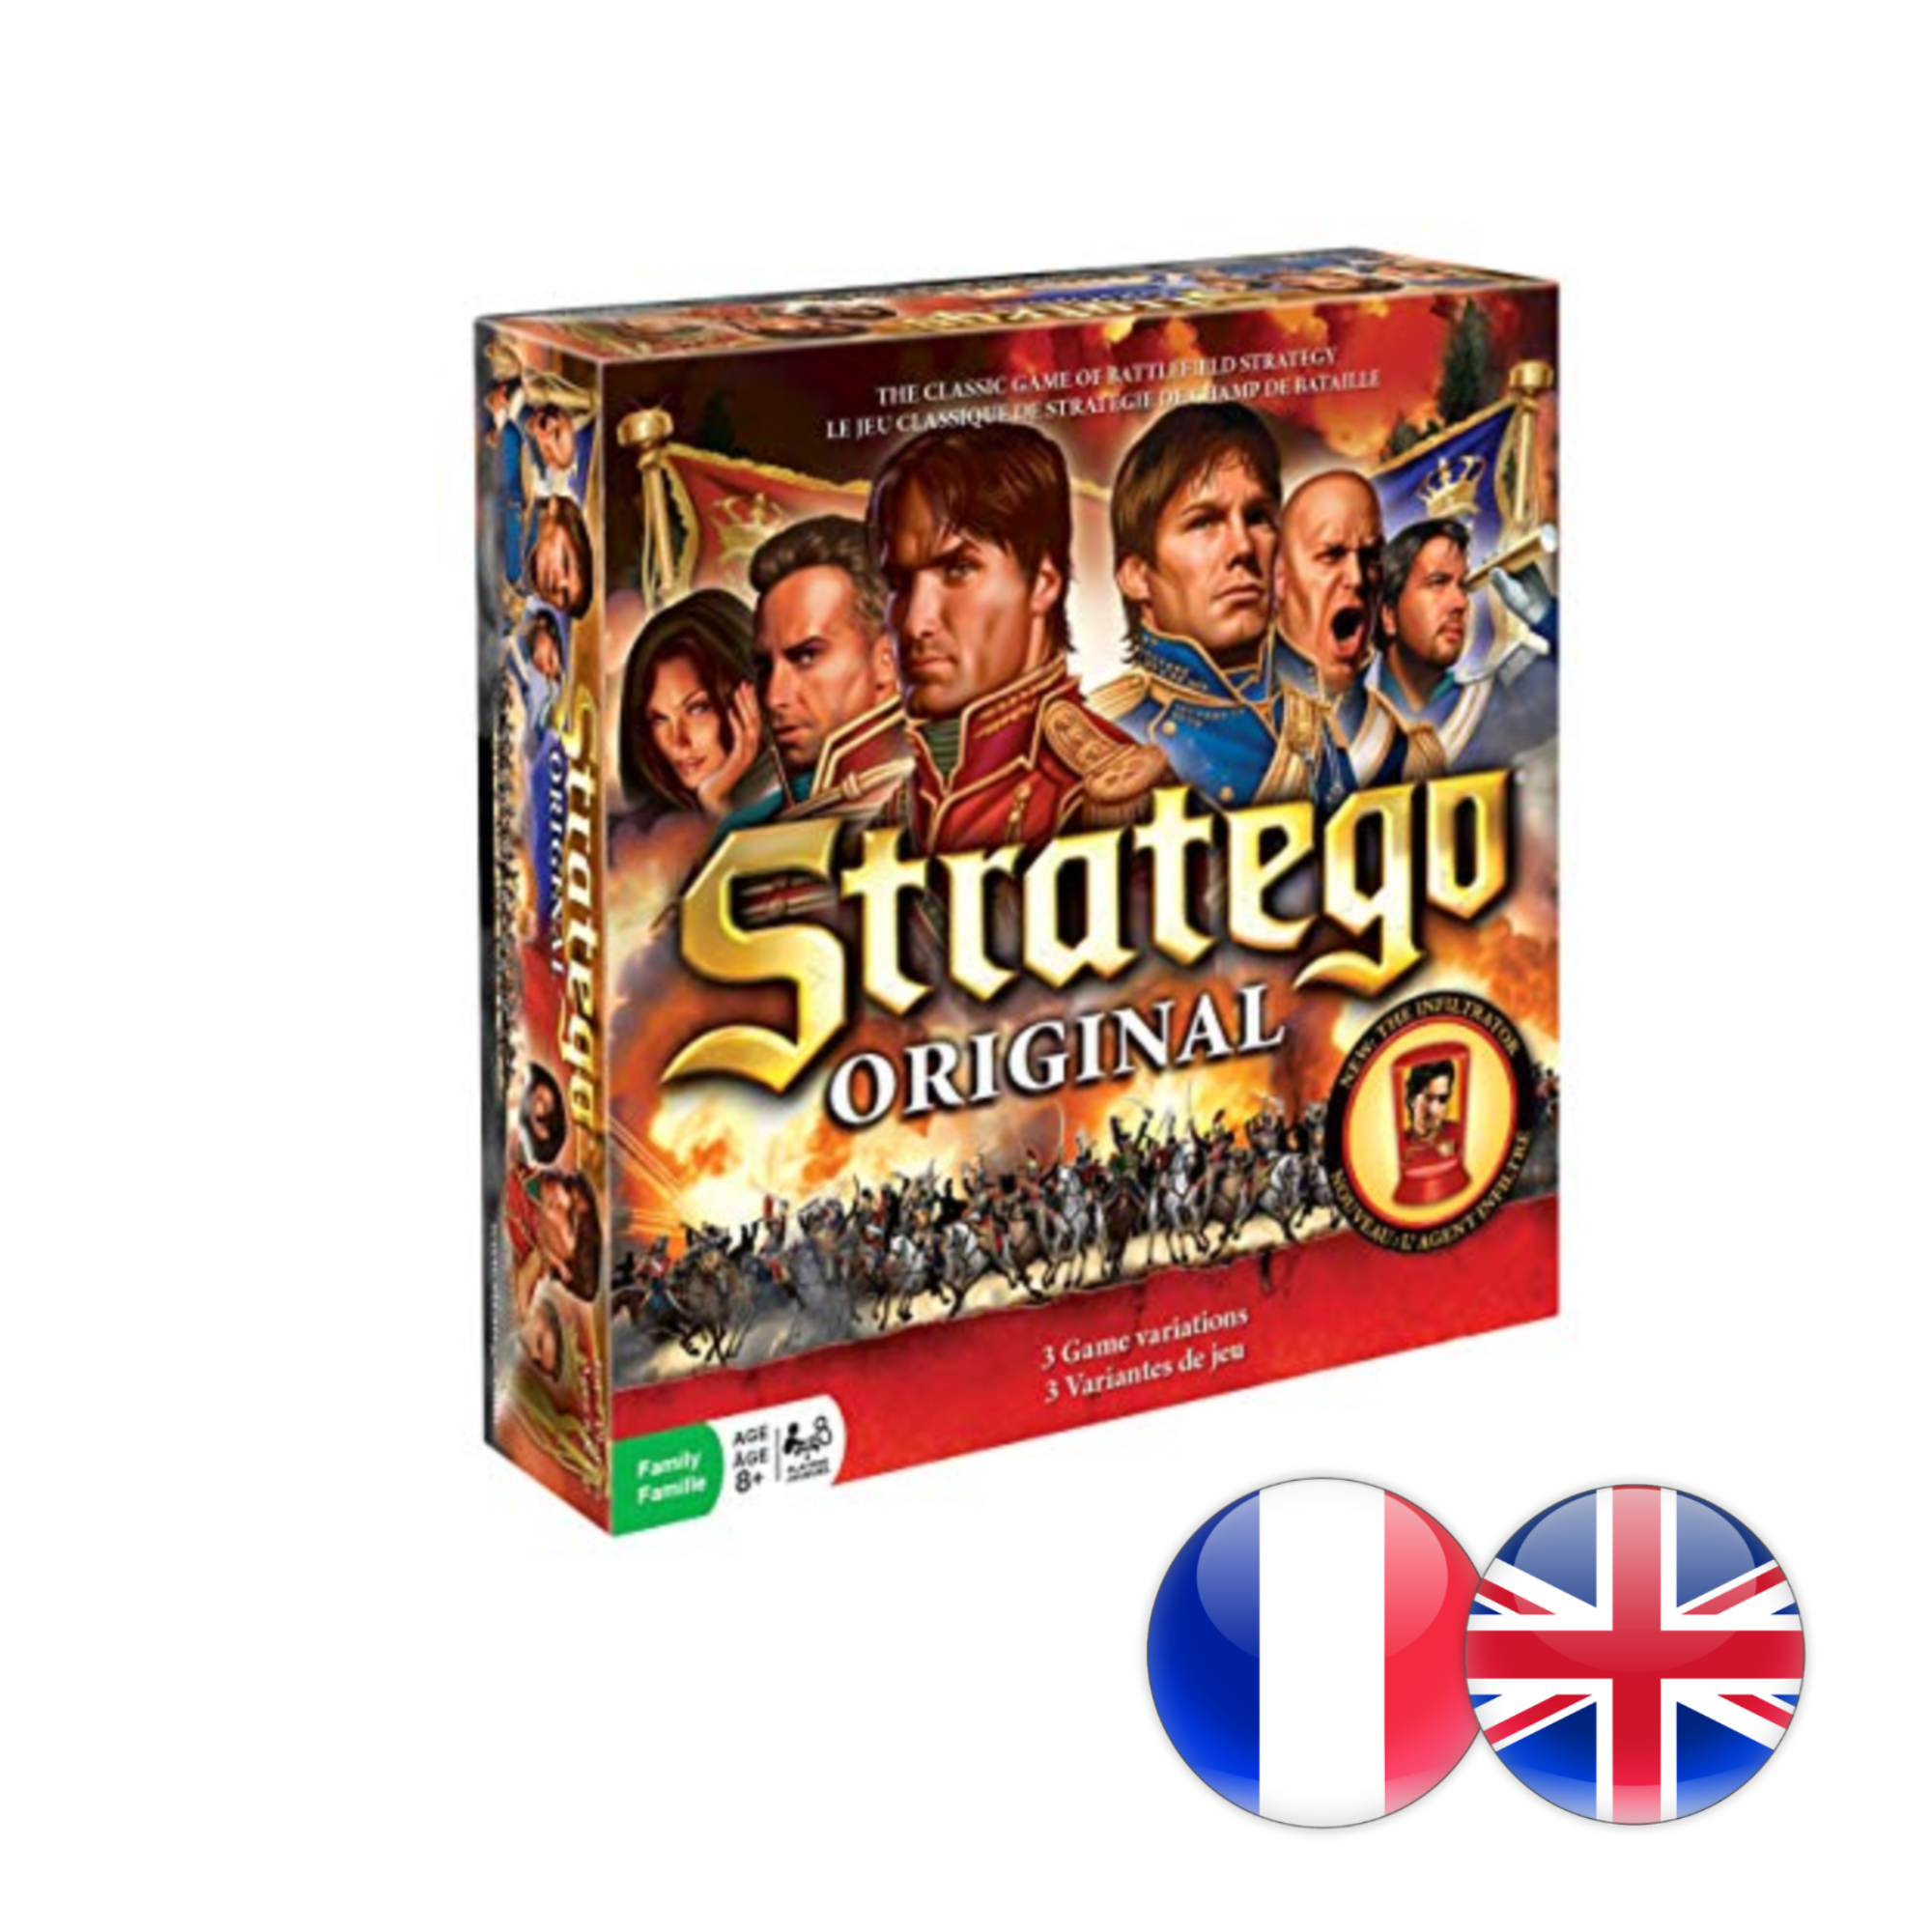 Patch Stratego Original (multi)